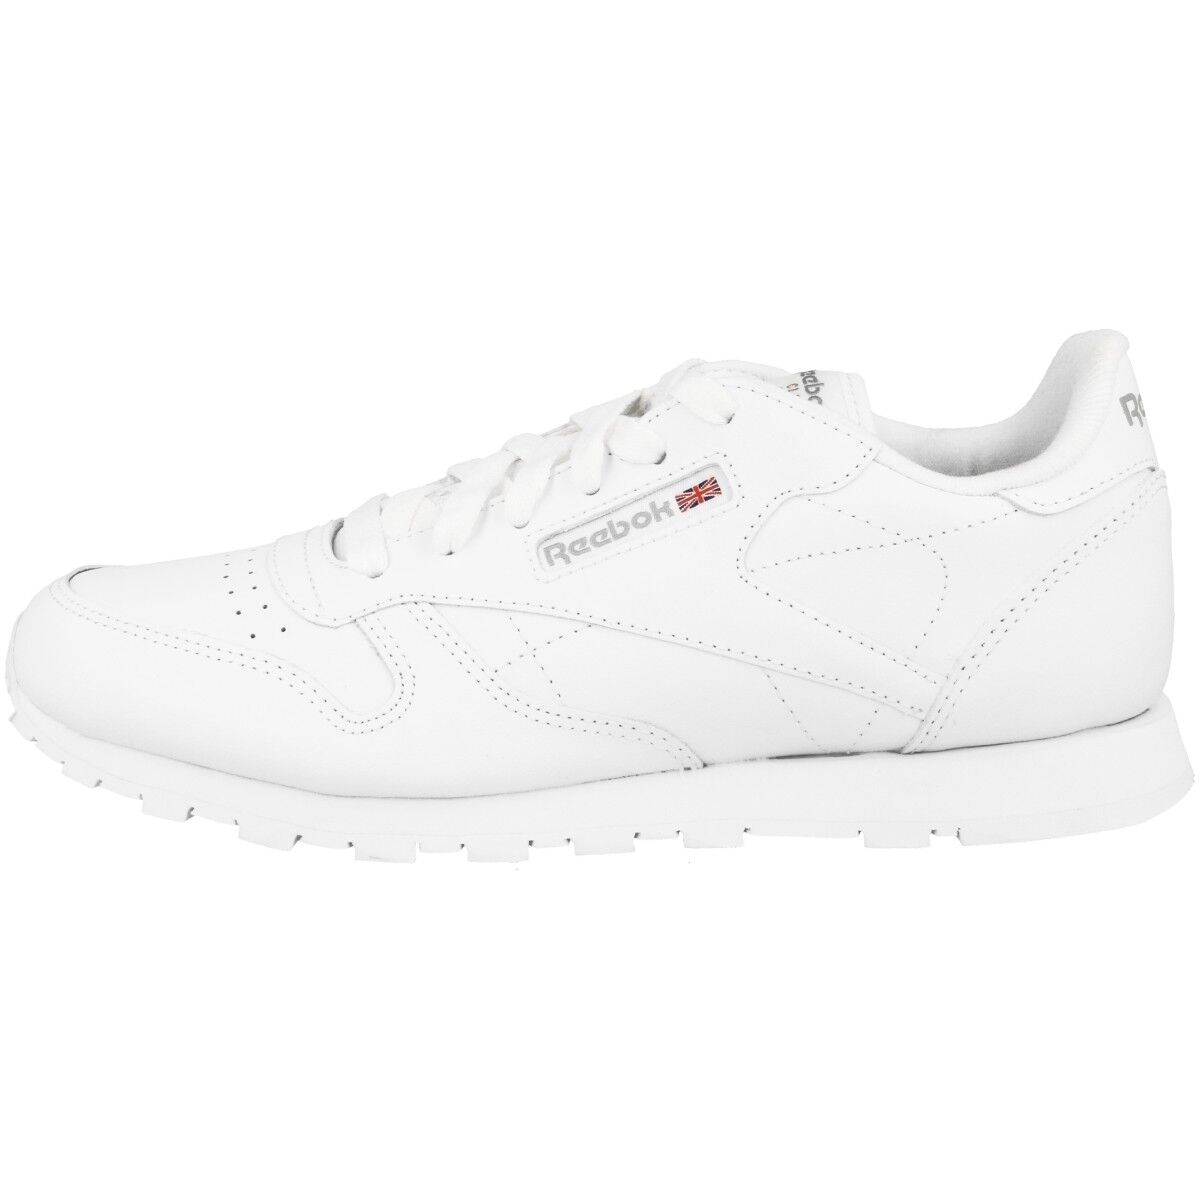 REEBOK CLASSIC LEATHER chaussures baskets baskets baskets FREIZEIT SPORT WEISS GS femmes 50151 4c408a